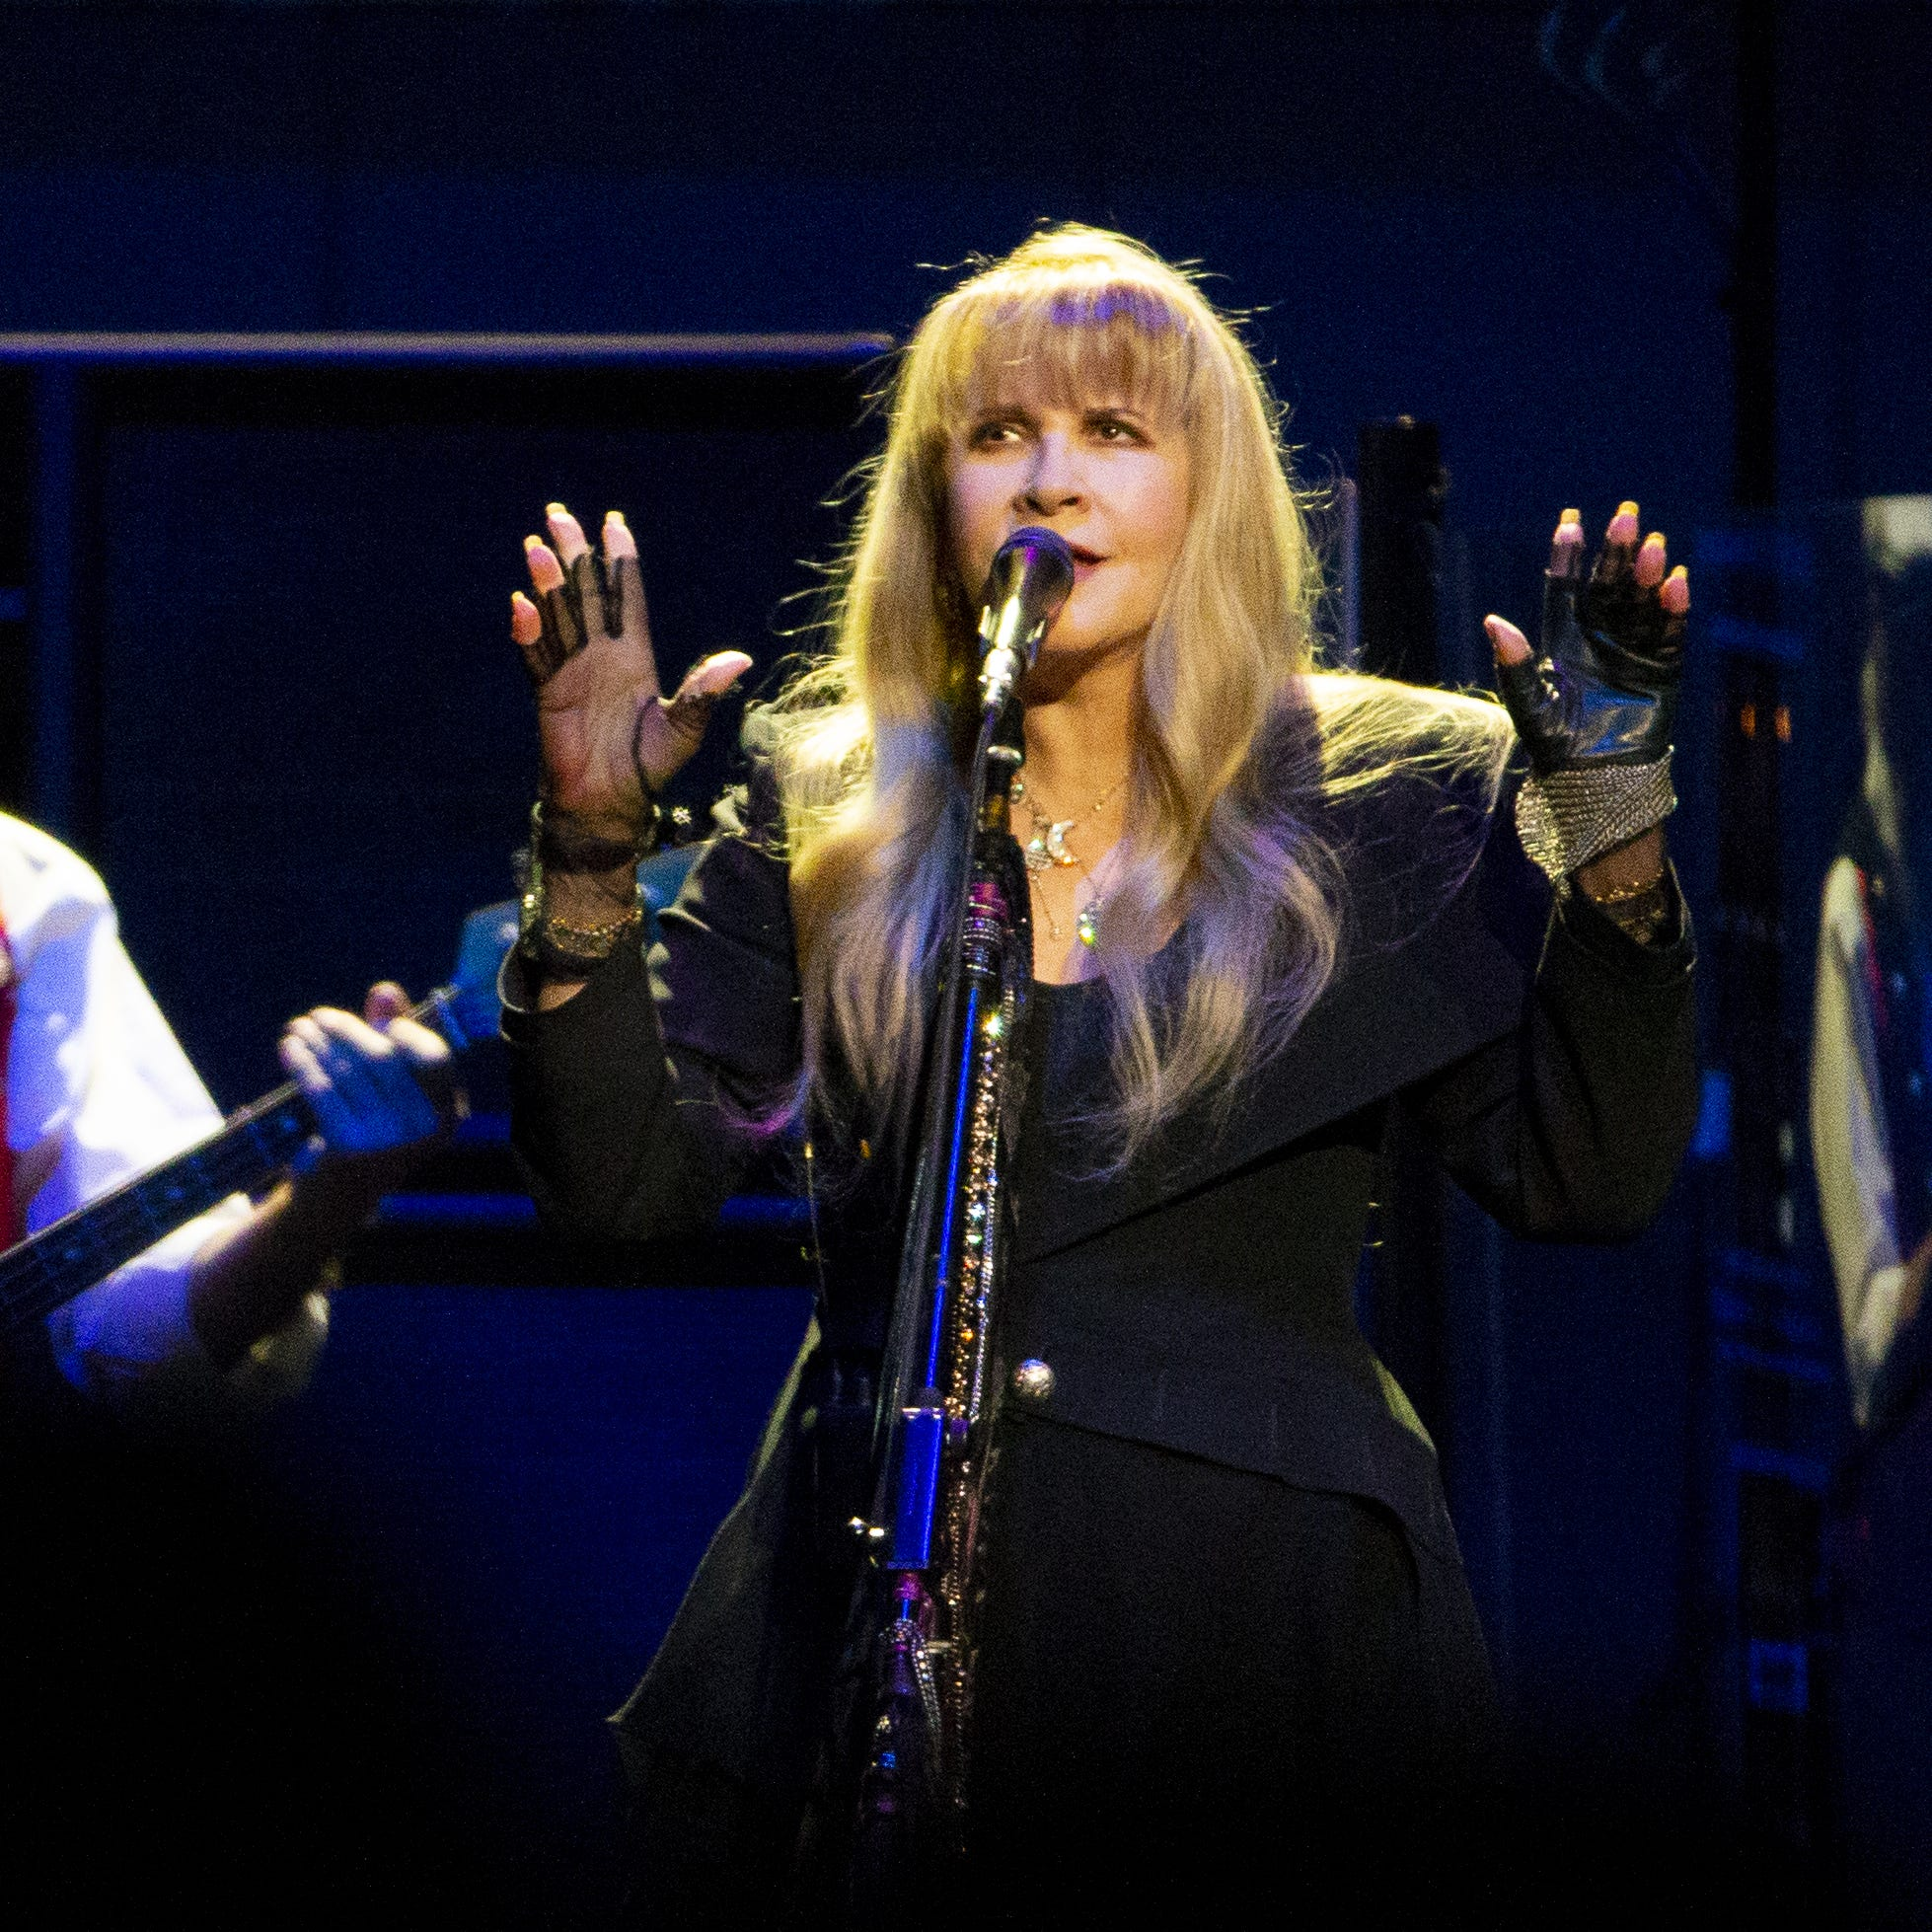 Stevie Nicks inducted to Rock and Roll Hall of Fame alongside Radiohead, the Cure